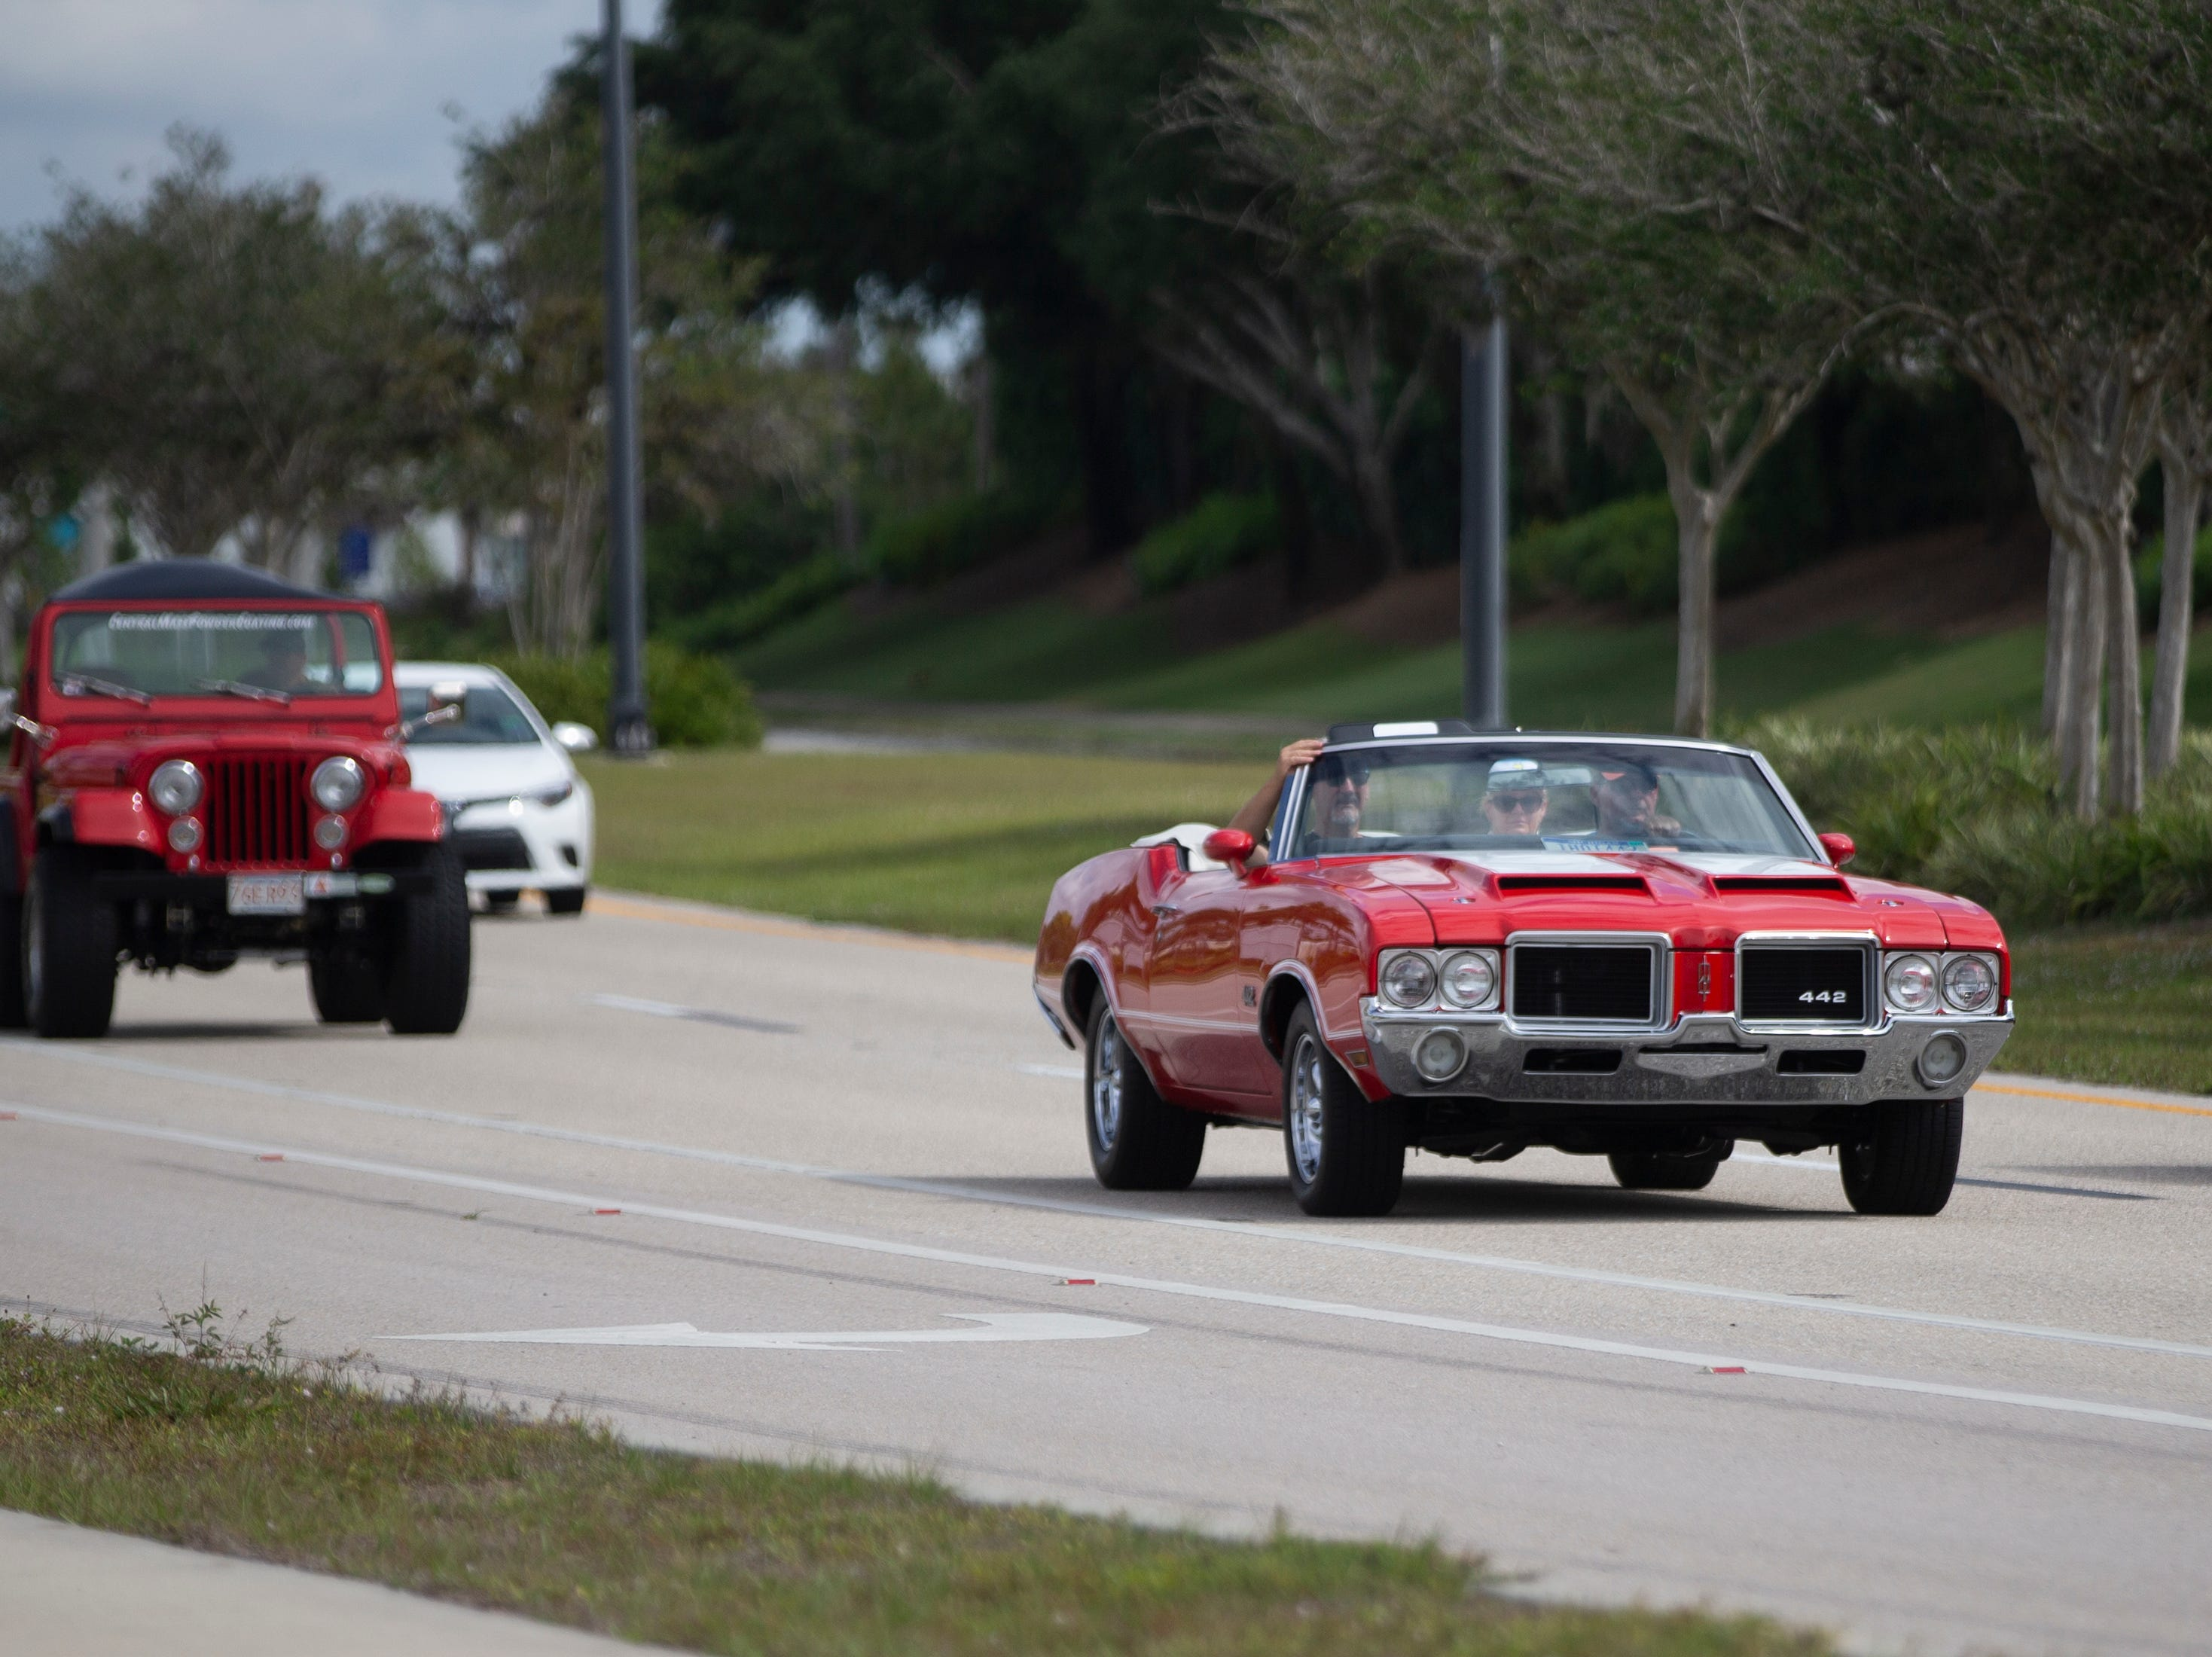 Cape Coral residents Paul Perzyk, Ross Smith and Terri Smith ride in Terri's 1971 Oldsmobile 442 during Cruis'n for a Cause event on Saturday, April 13, 2019 in Estero.